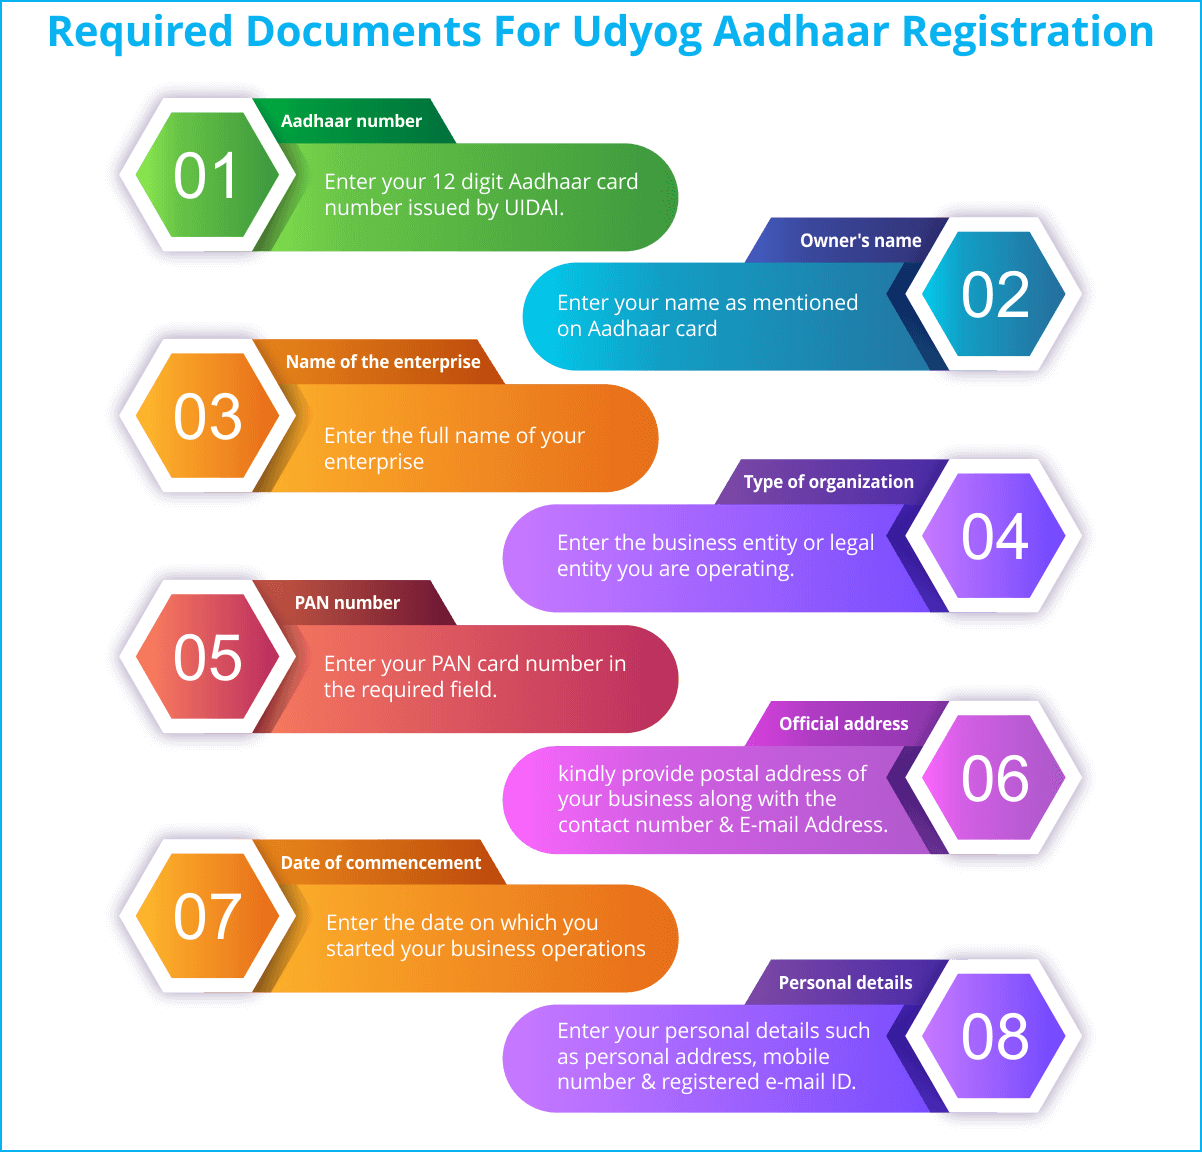 Required Documents For Udyog Aadhaar Registration